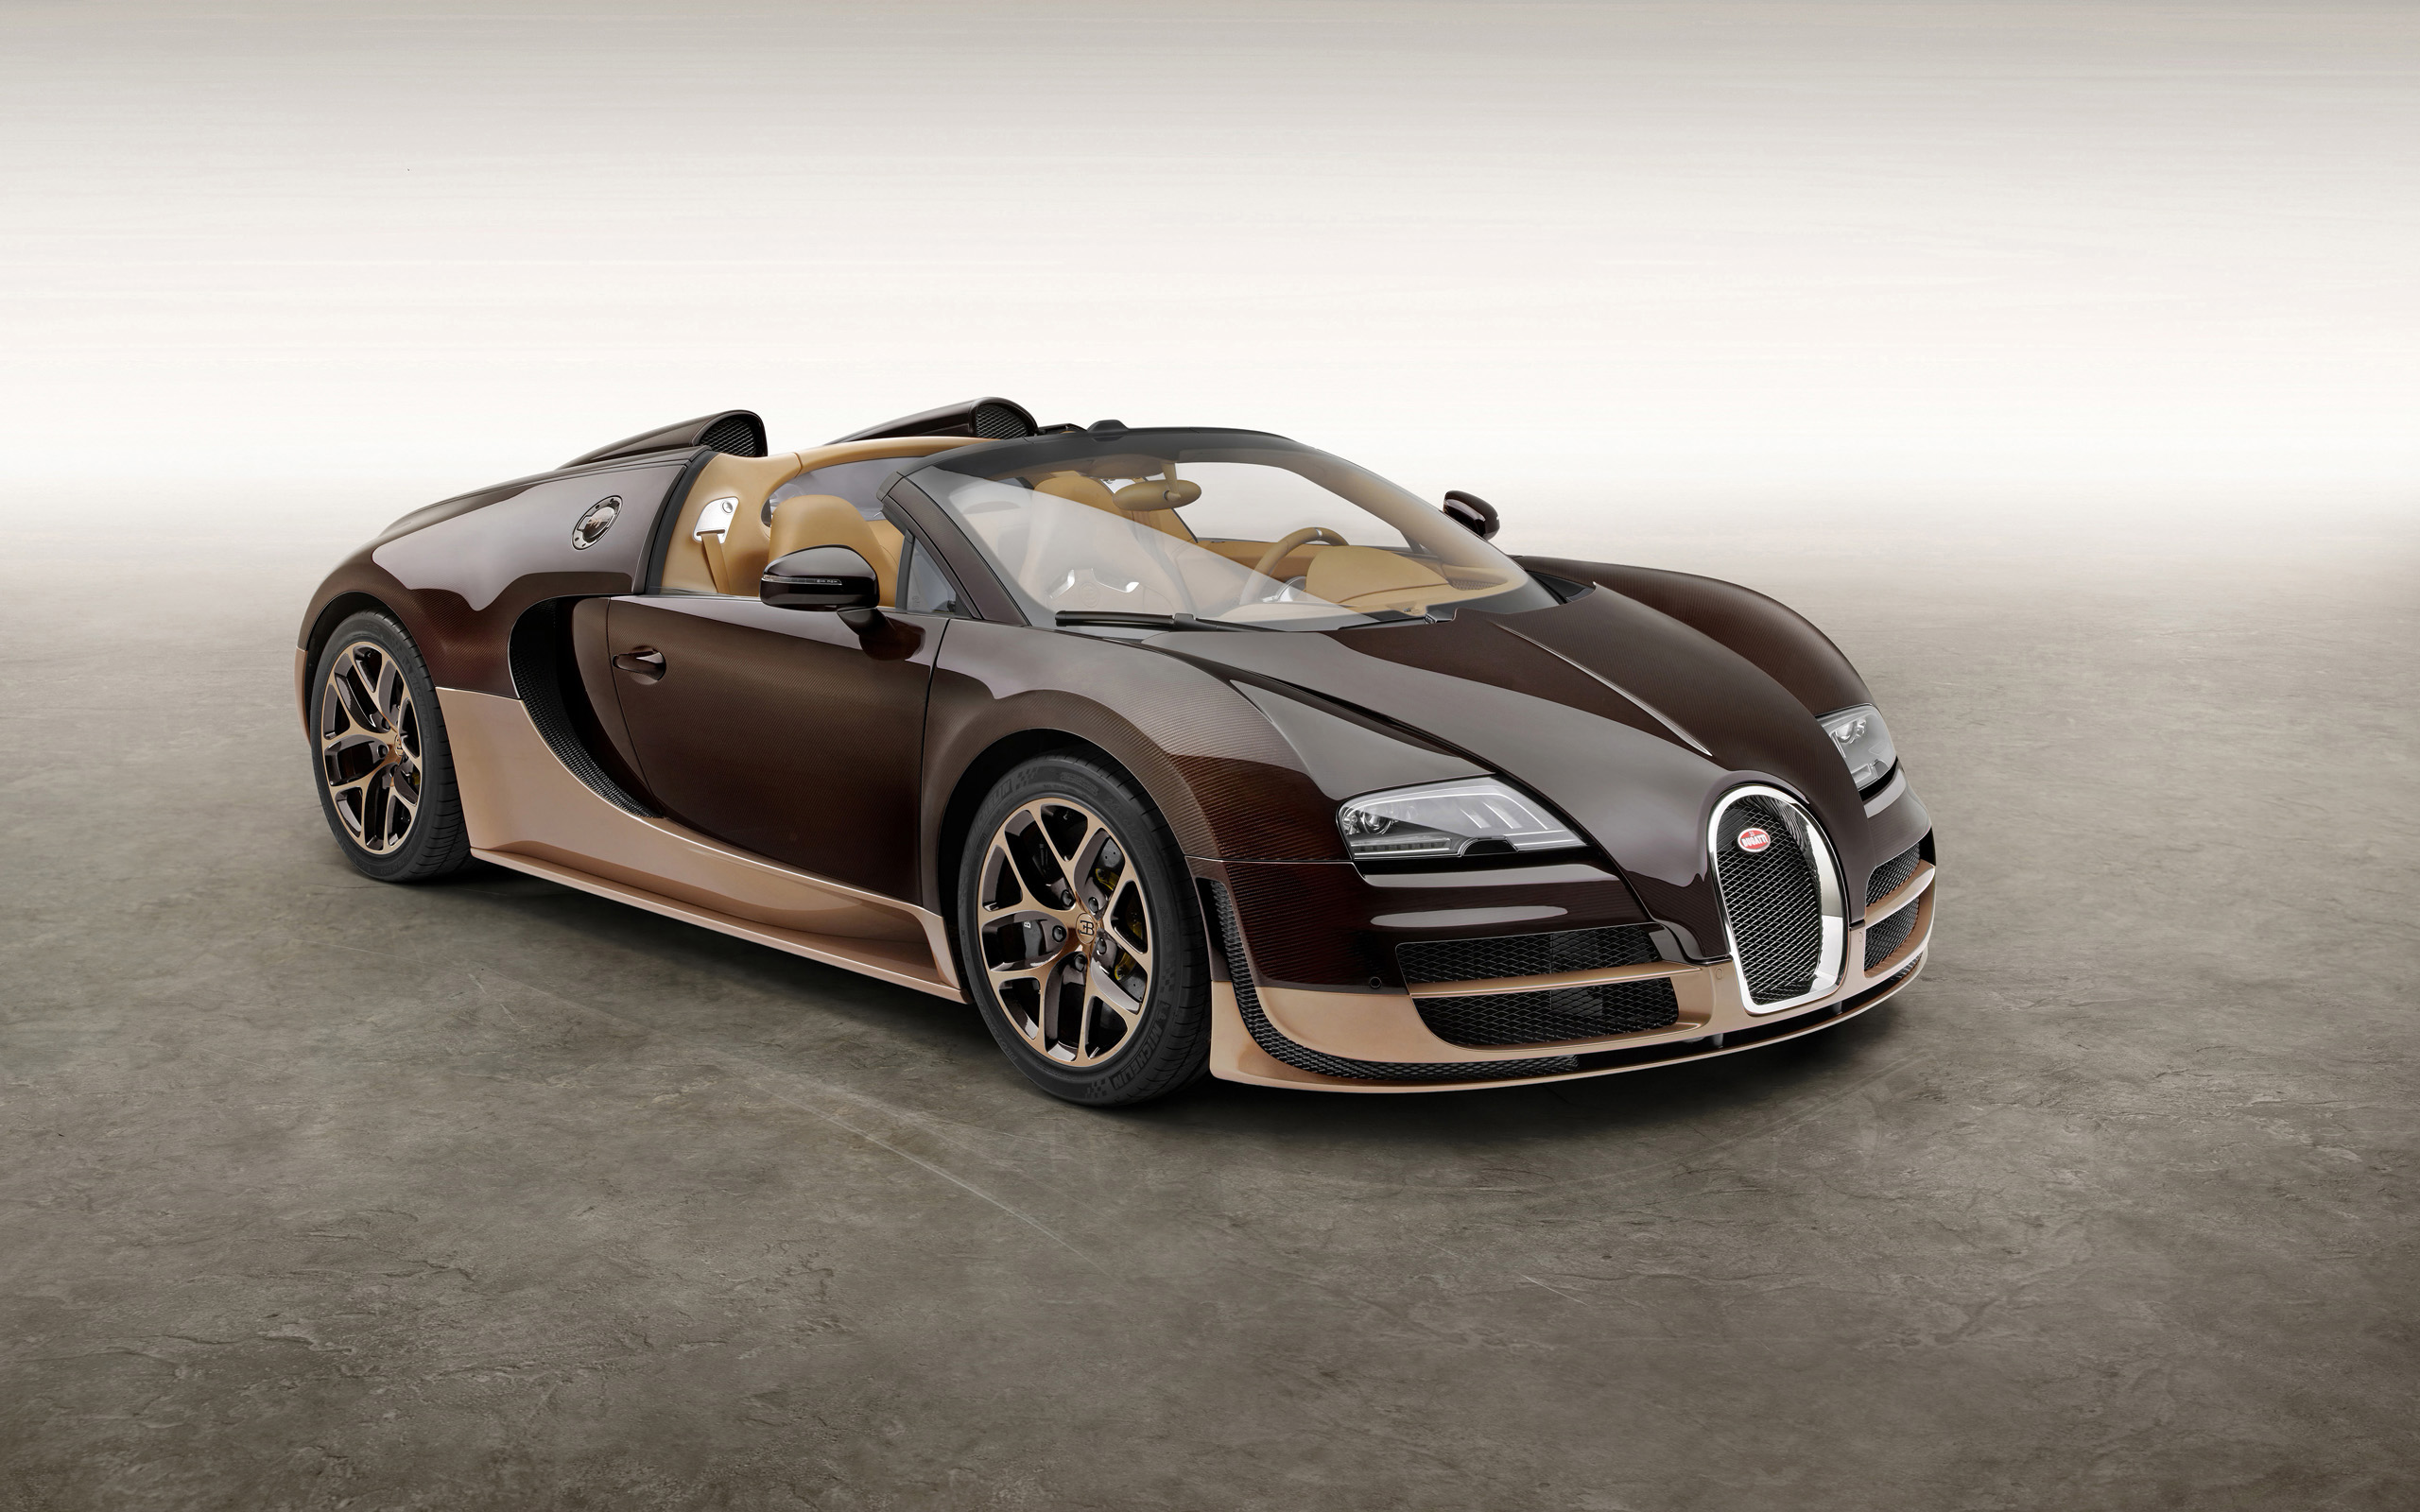 2014 bugatti veyron grand sport vitesse legend rembrandt bugatti wallpaper hd car wallpapers. Black Bedroom Furniture Sets. Home Design Ideas